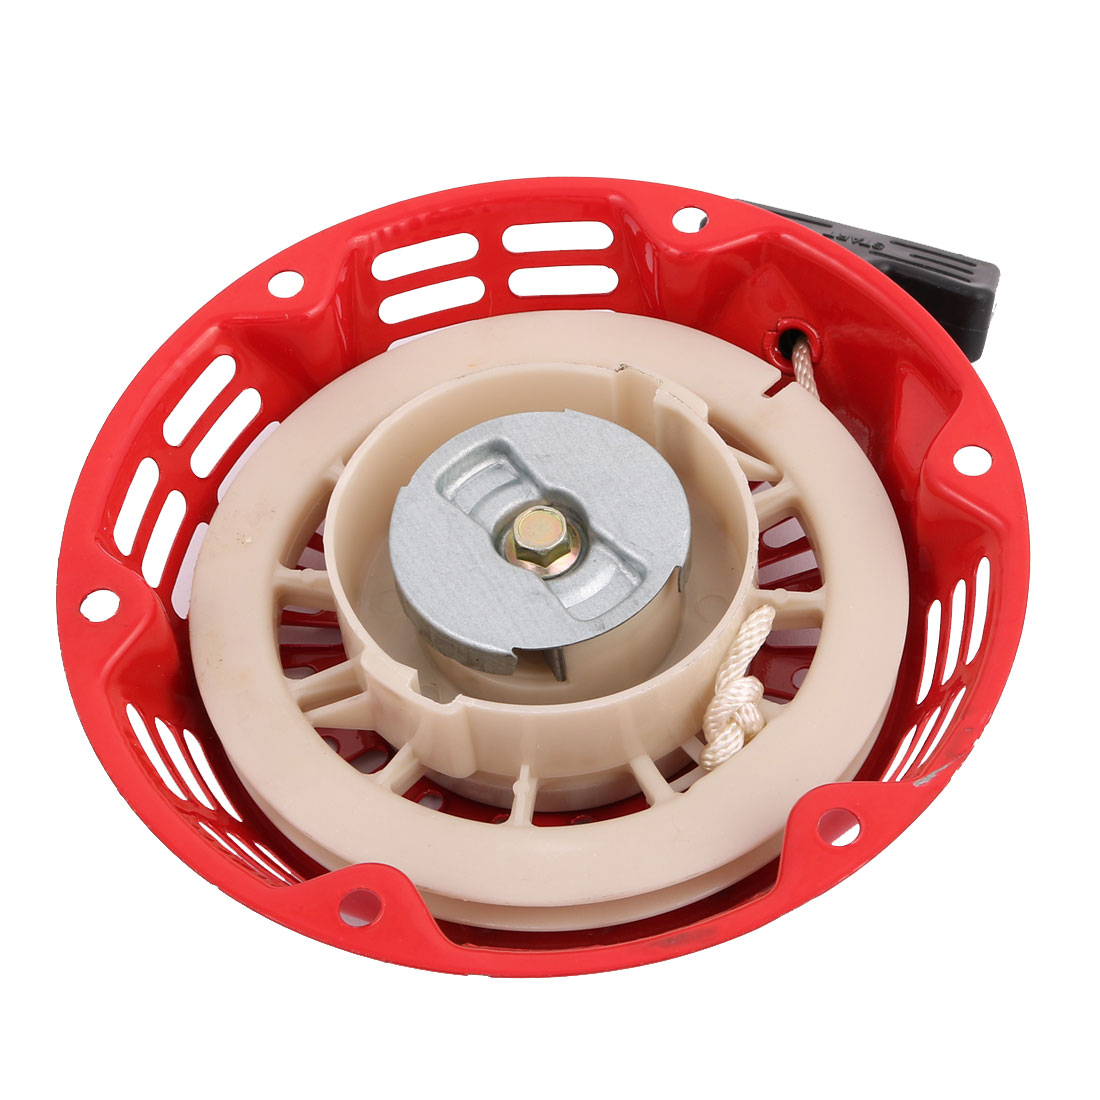 Pull Recoil Round Plate Generator Engine Accessories w Handle 160F/170F